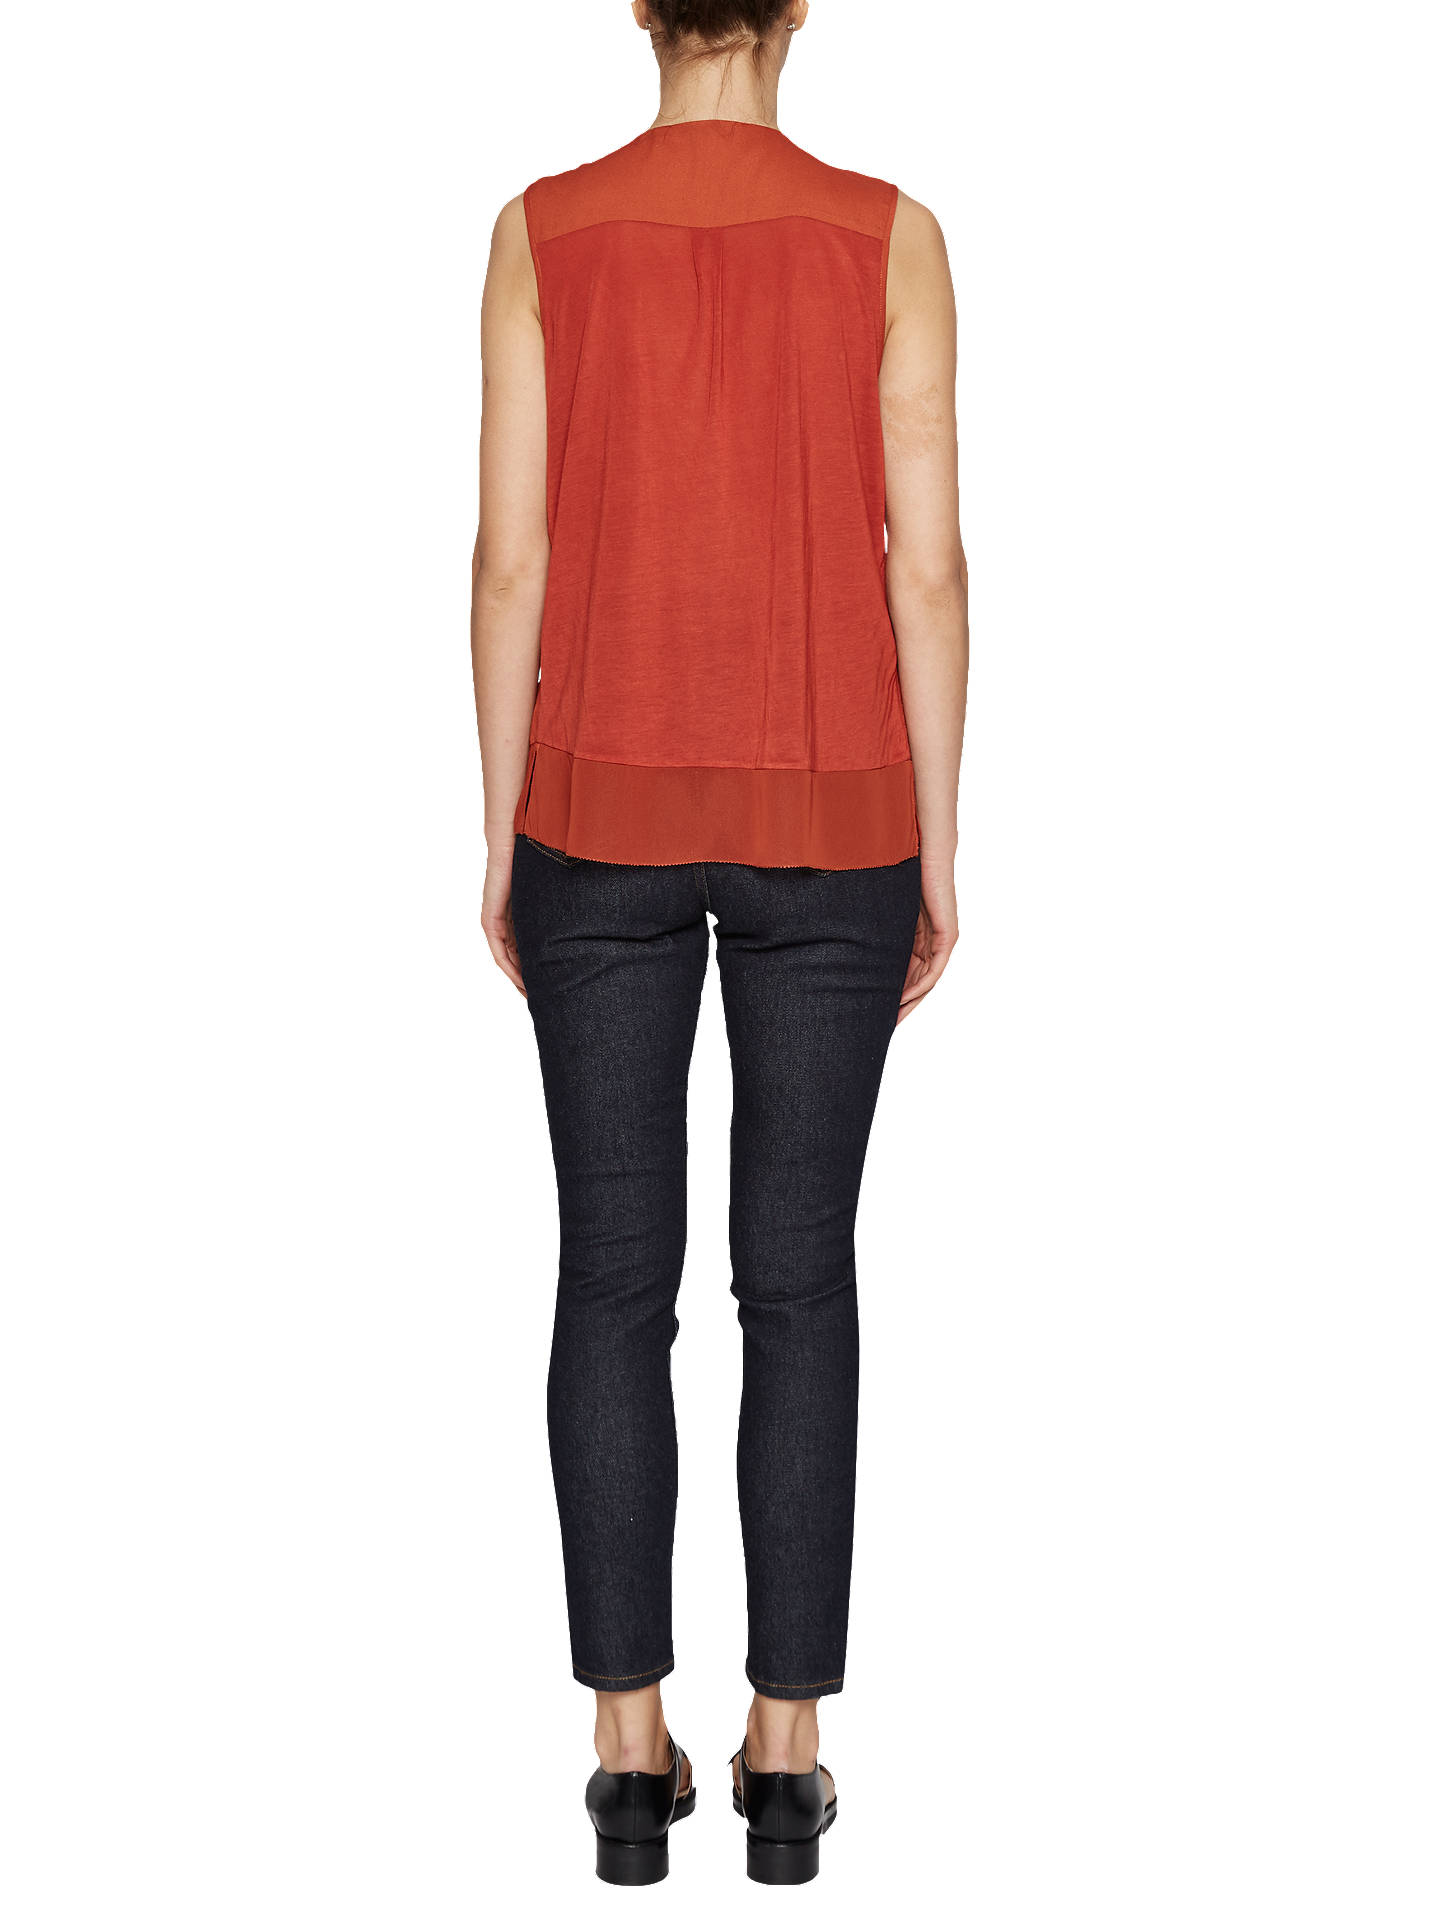 BuyFrench Connection Classic Crepe V Neck Top, Copper Coin, XS Online at johnlewis.com